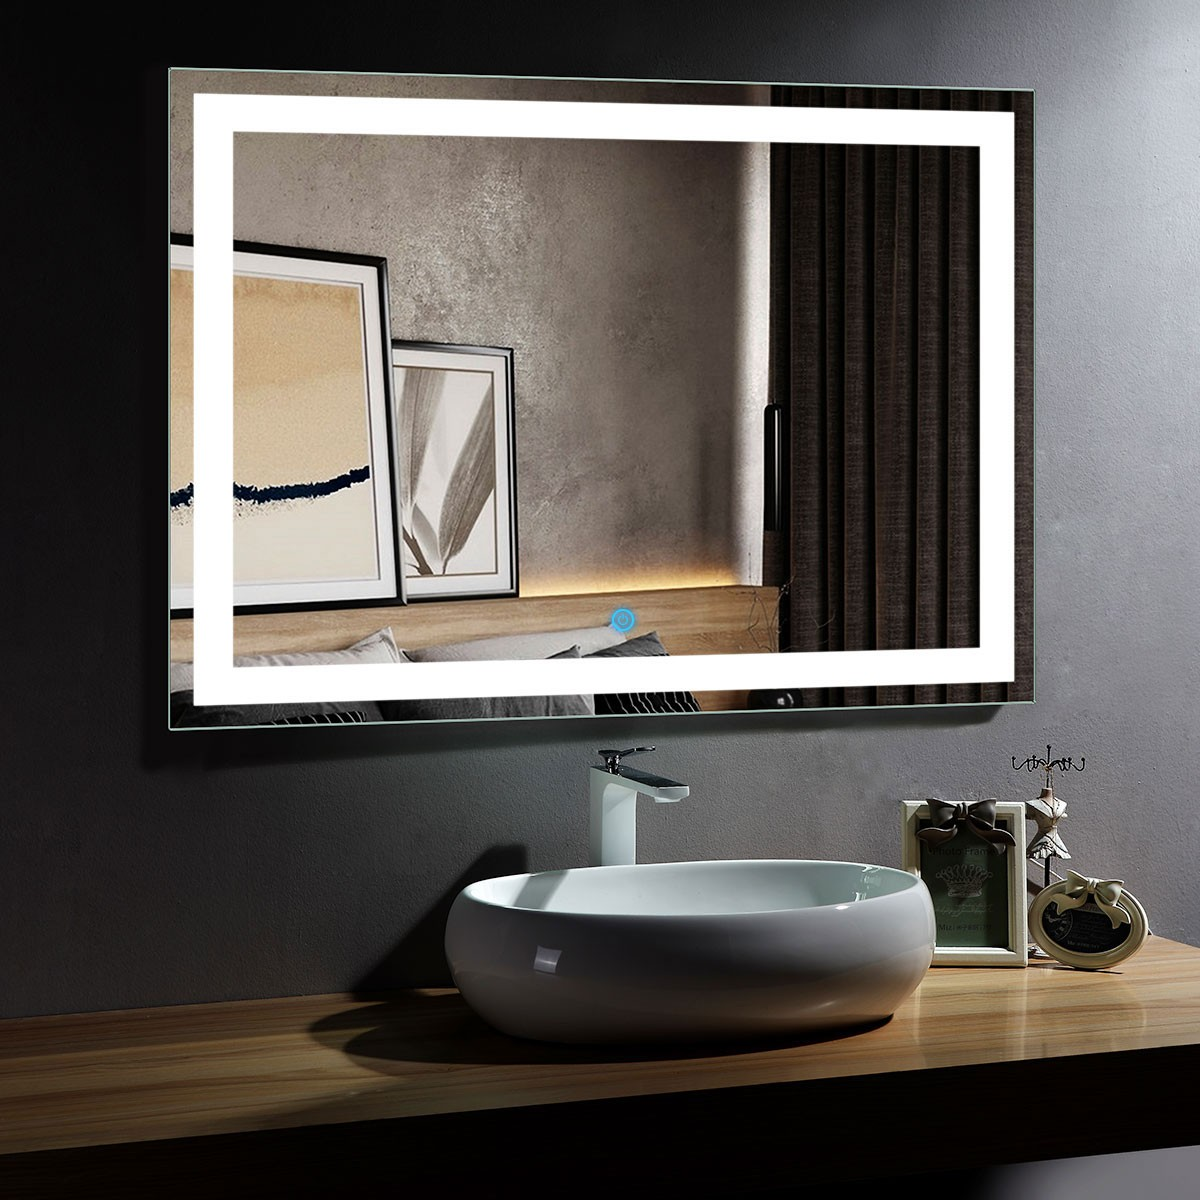 48 x 36 In Horizontal LED Bathroom Mirror with Touch Button (DK-OD-CK010-D)